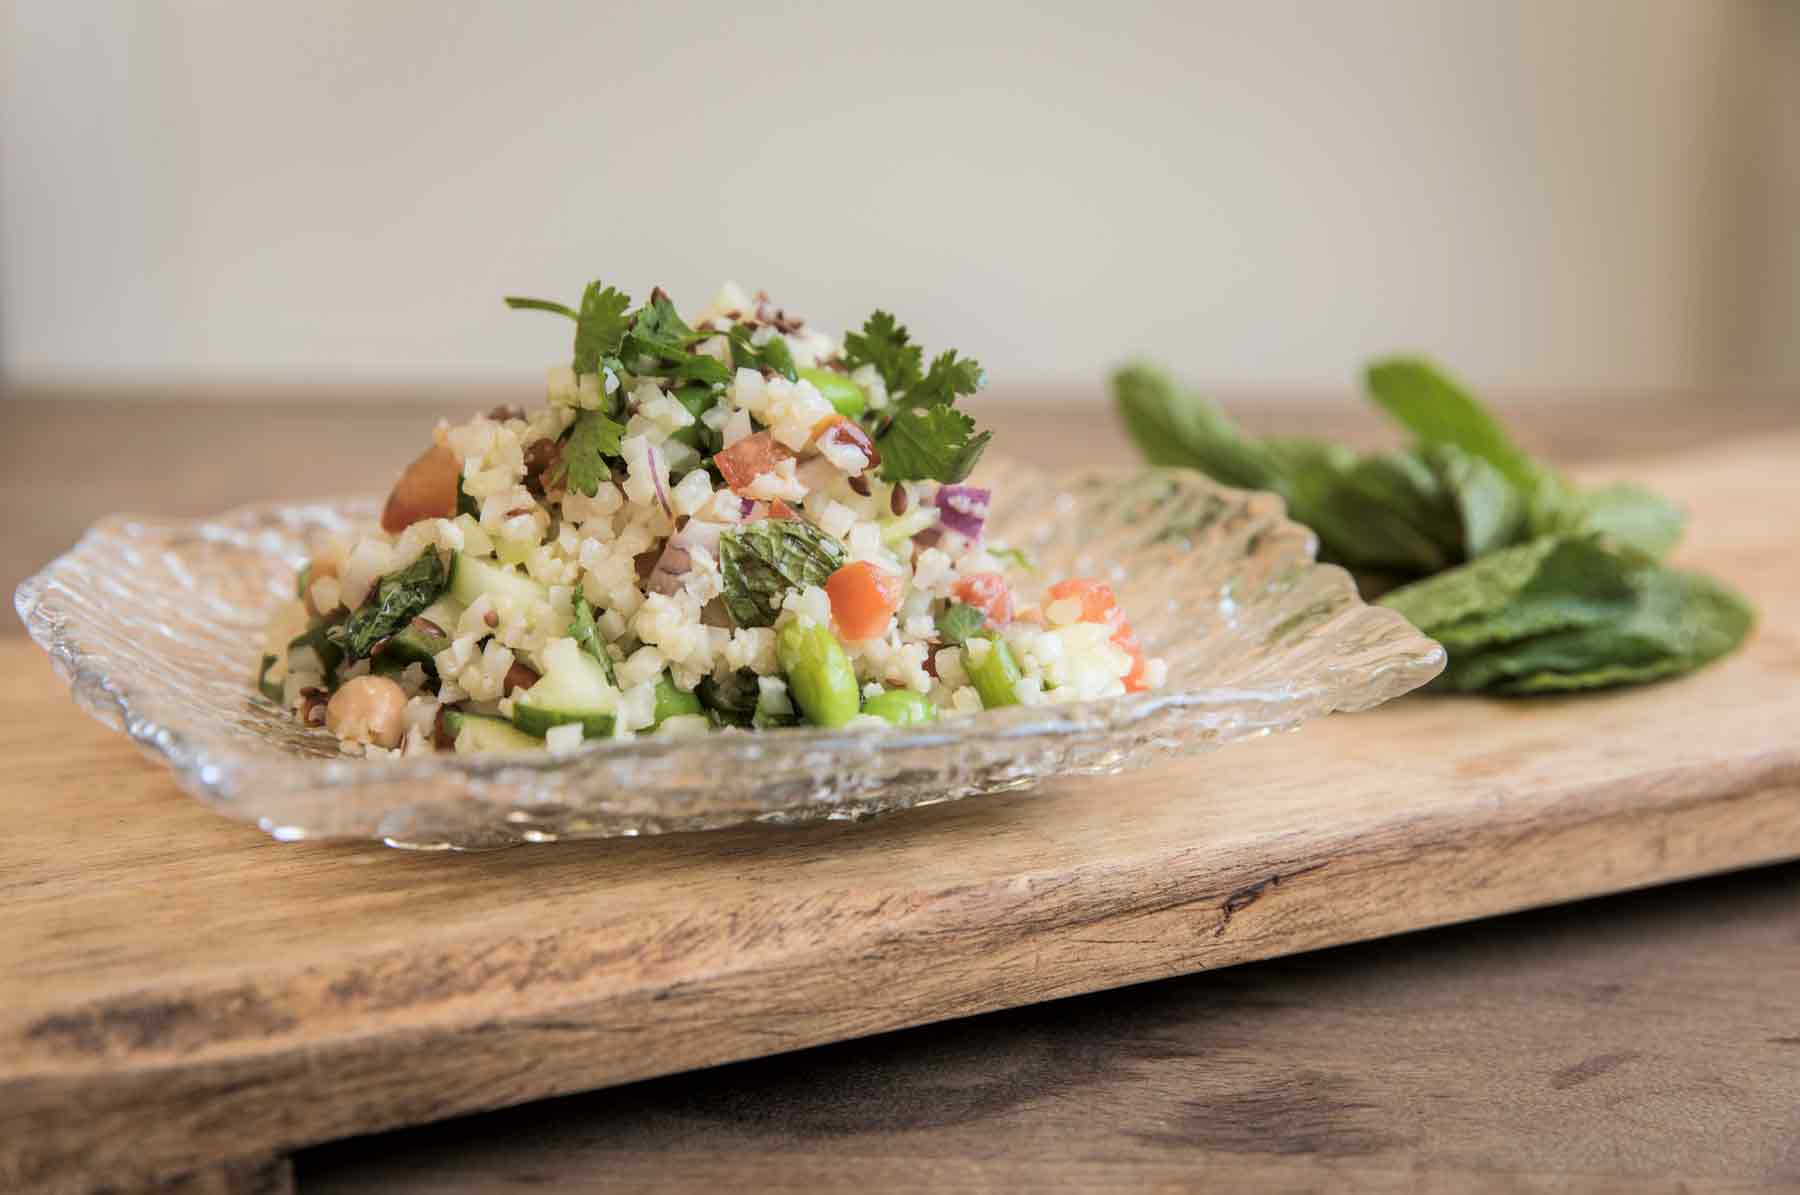 Vegan recipe cauliflower tabbouleh